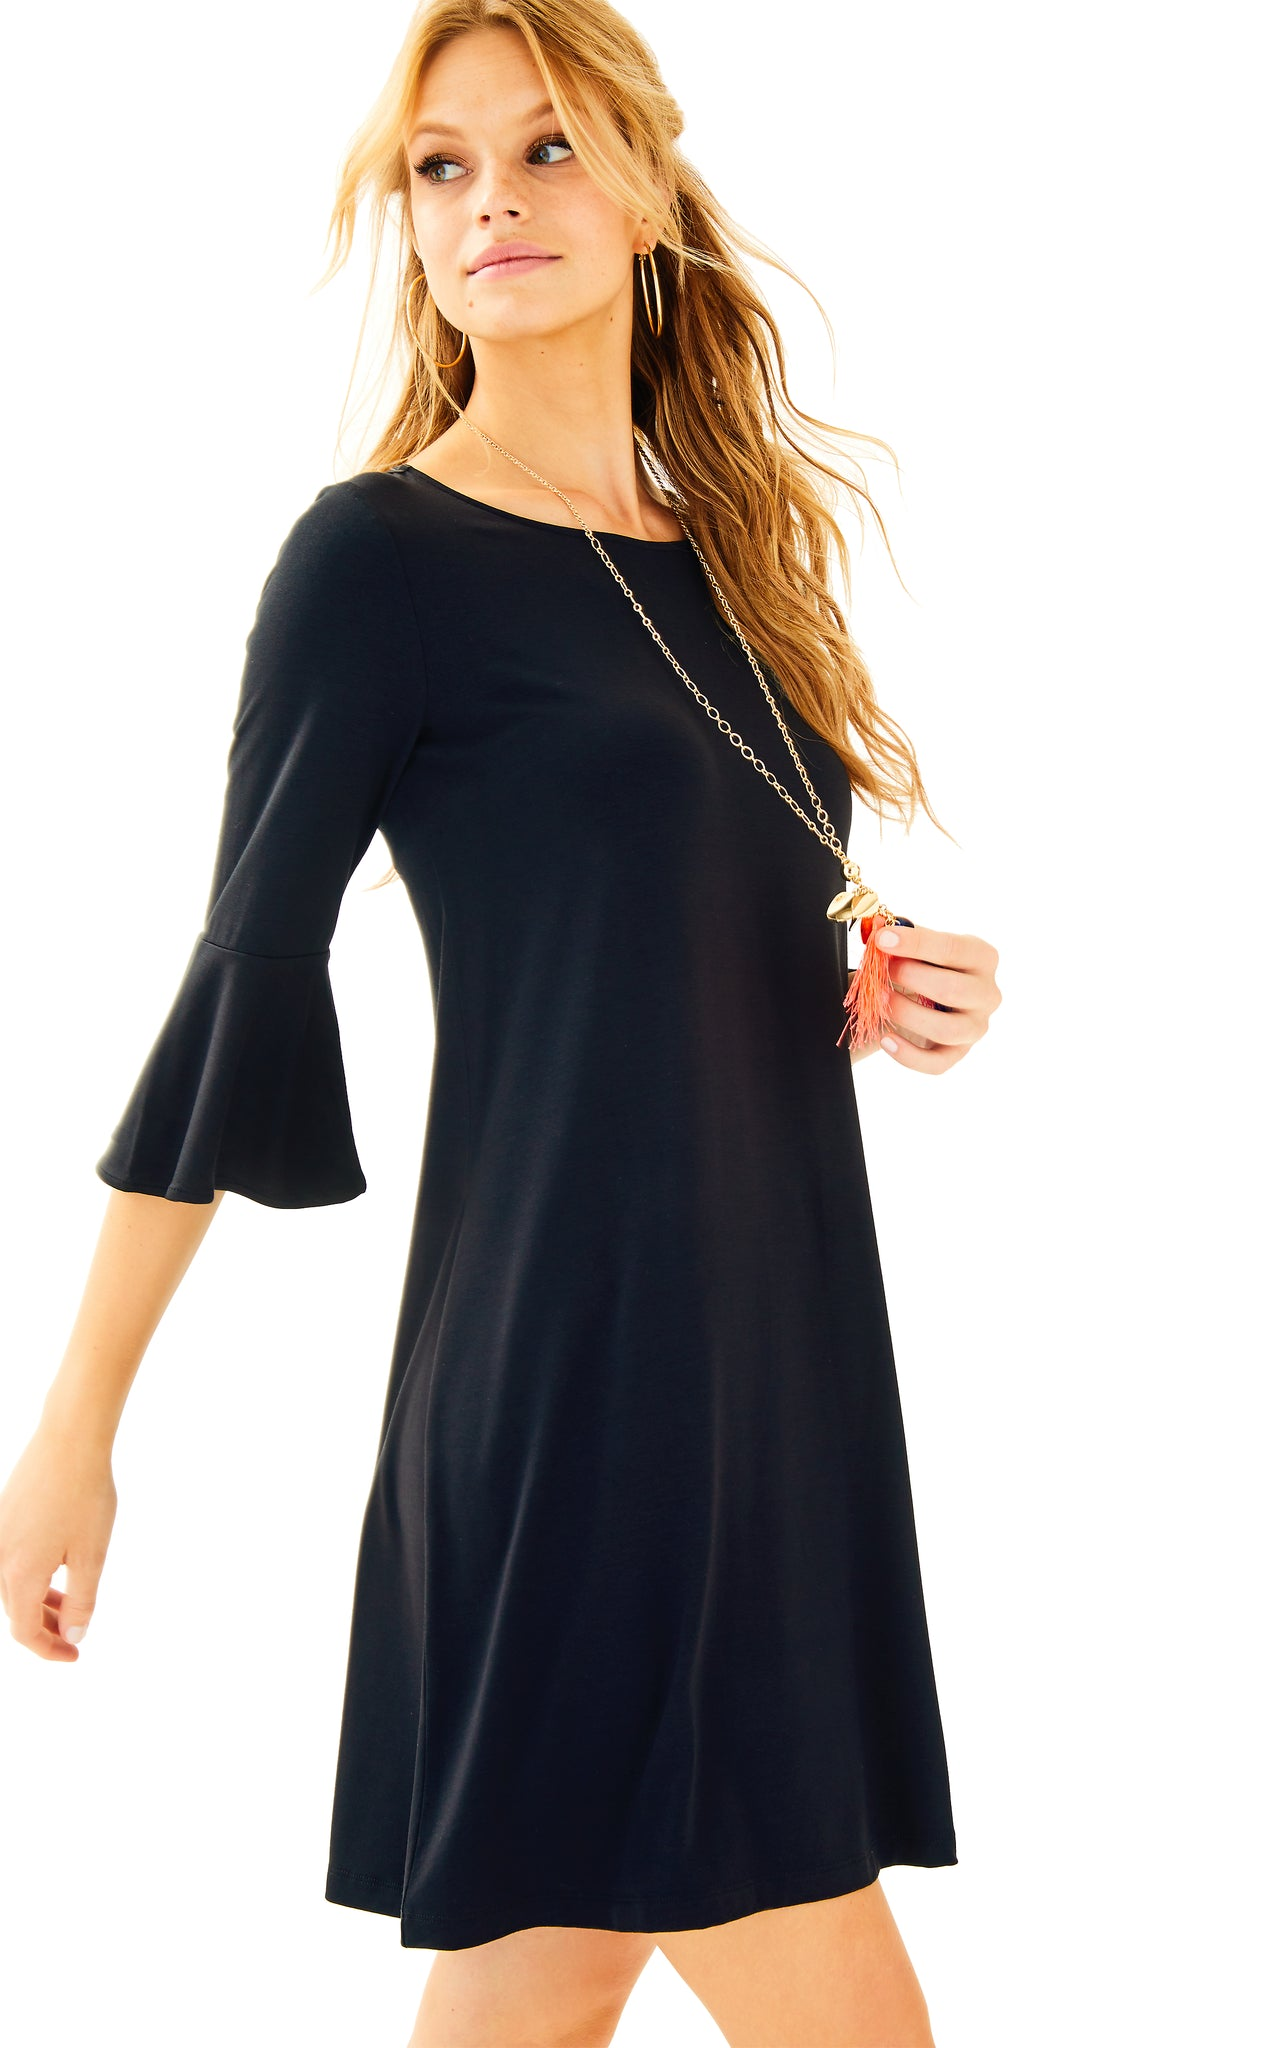 Ophelia Dress Onyx